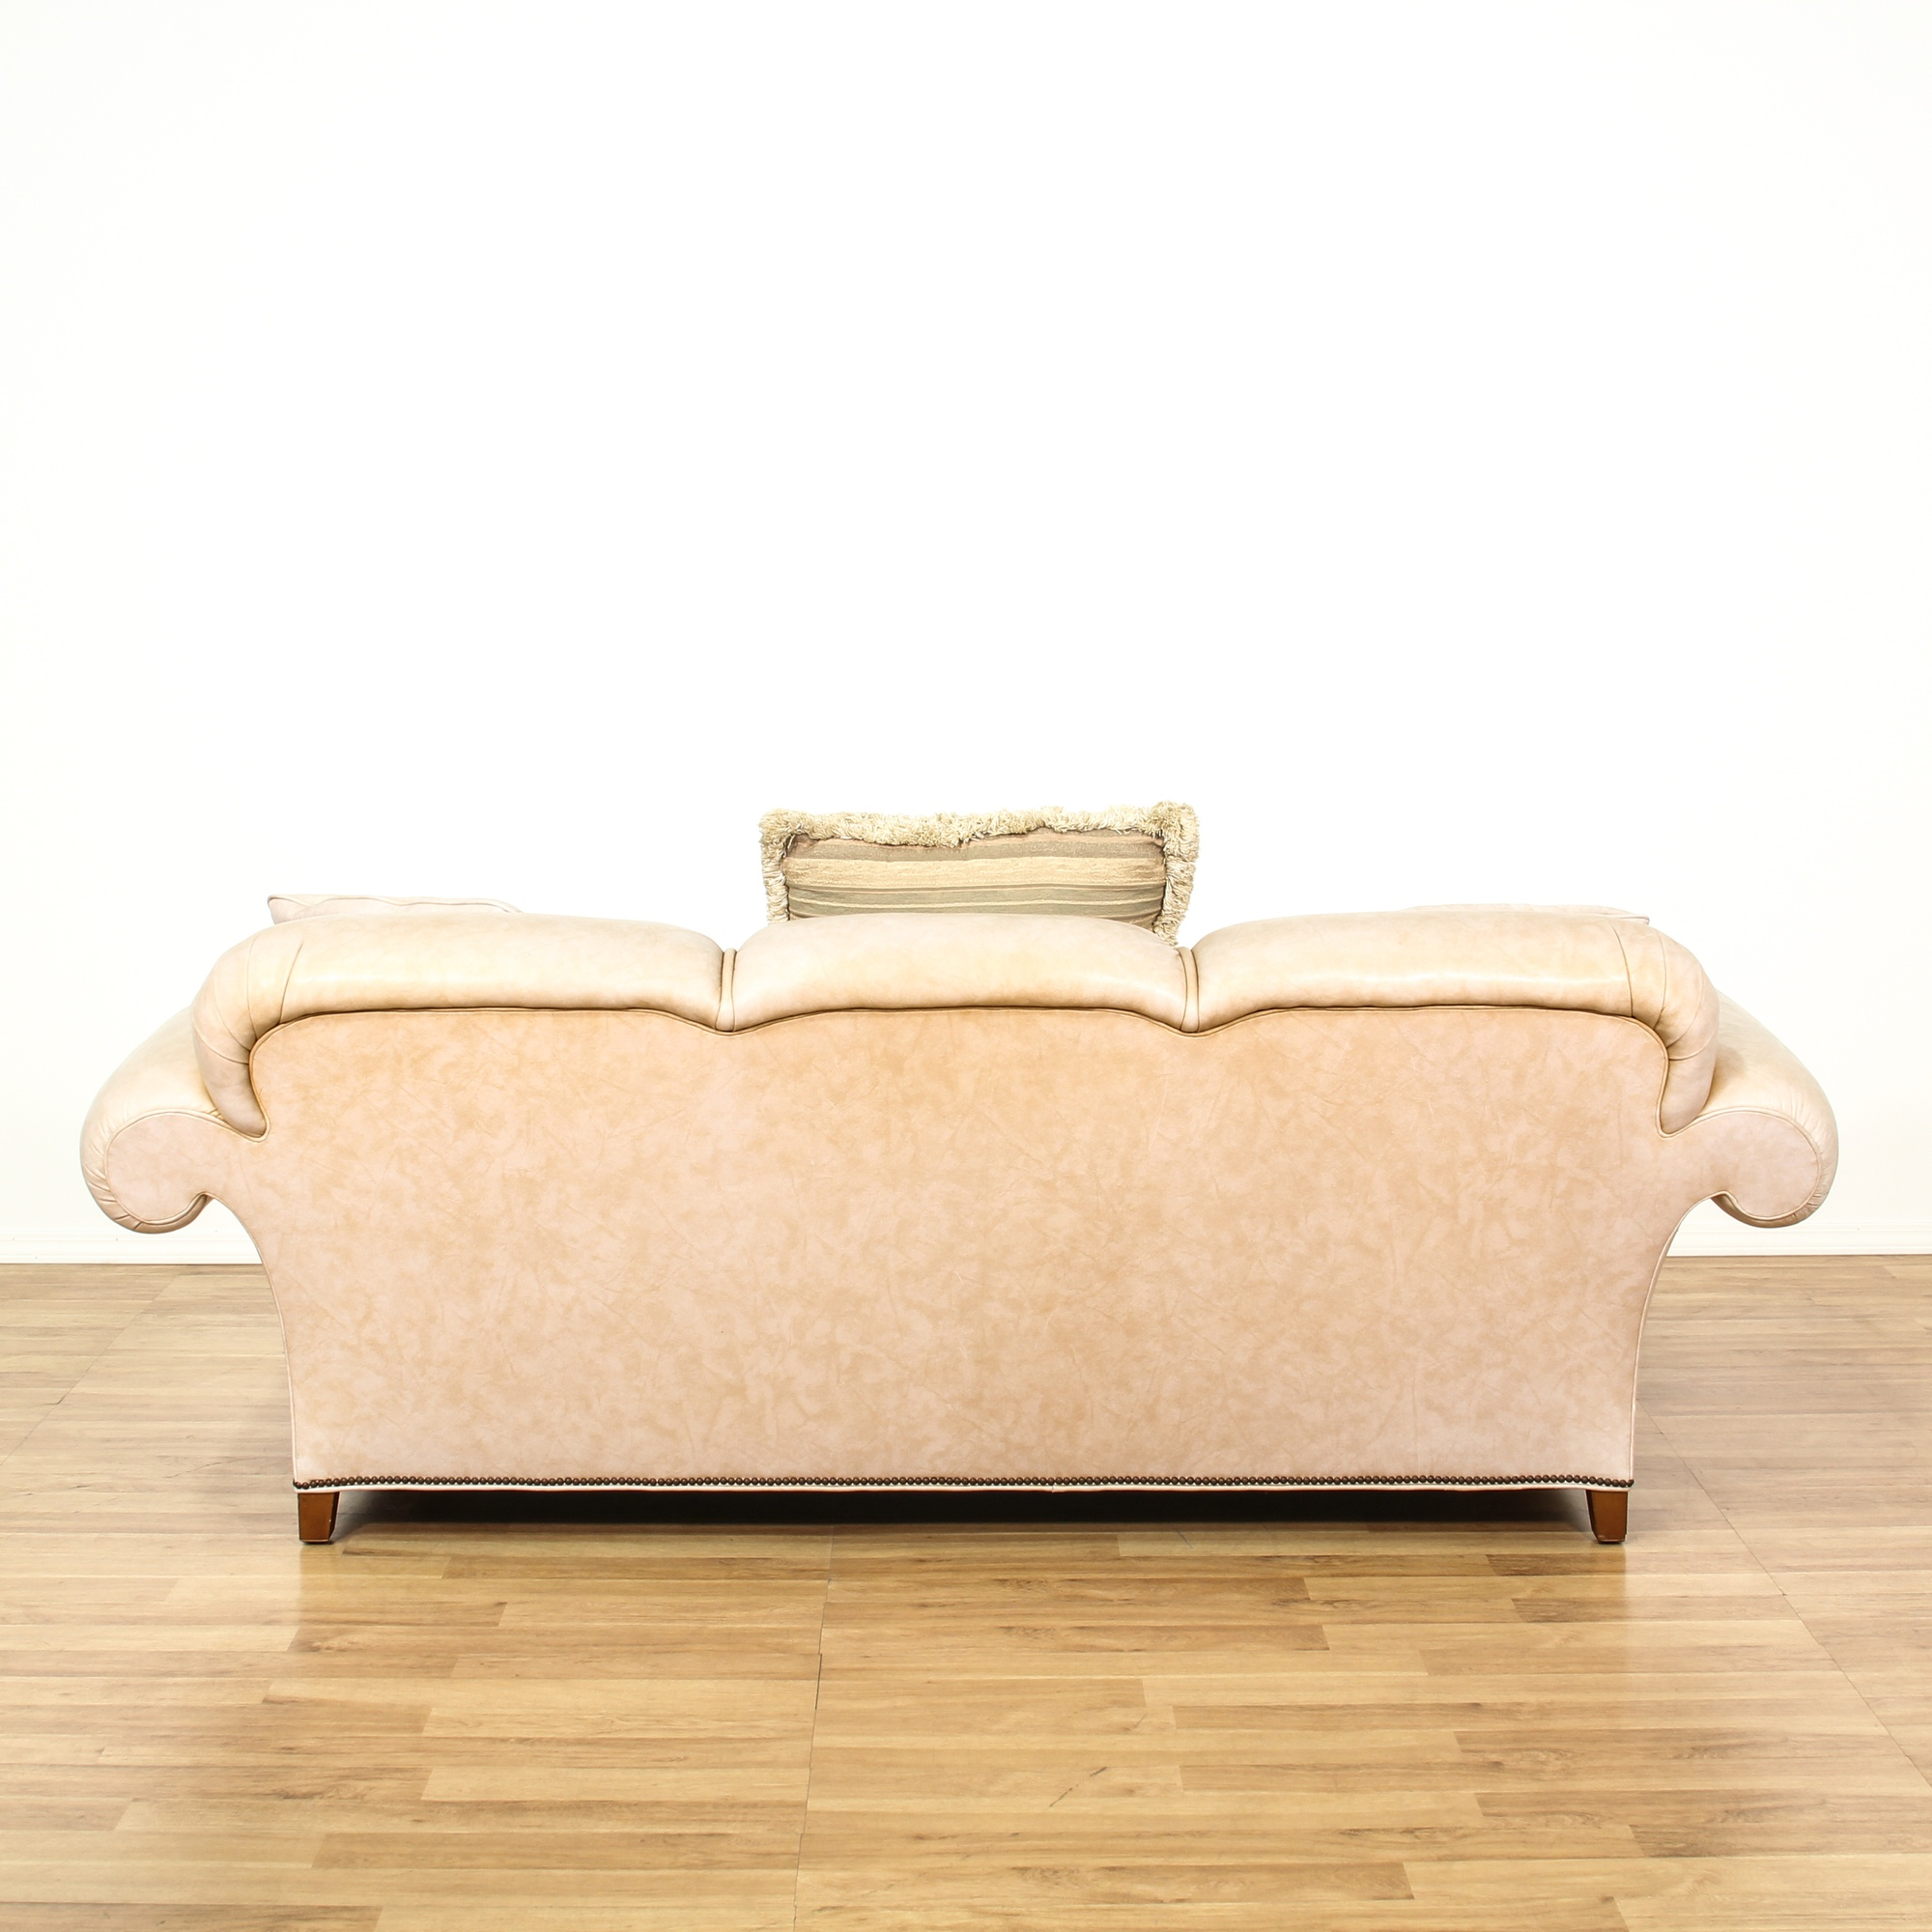 Baker Cream Leather Upholstered Sofa Loveseat Vintage Furniture San Diego Los Angeles